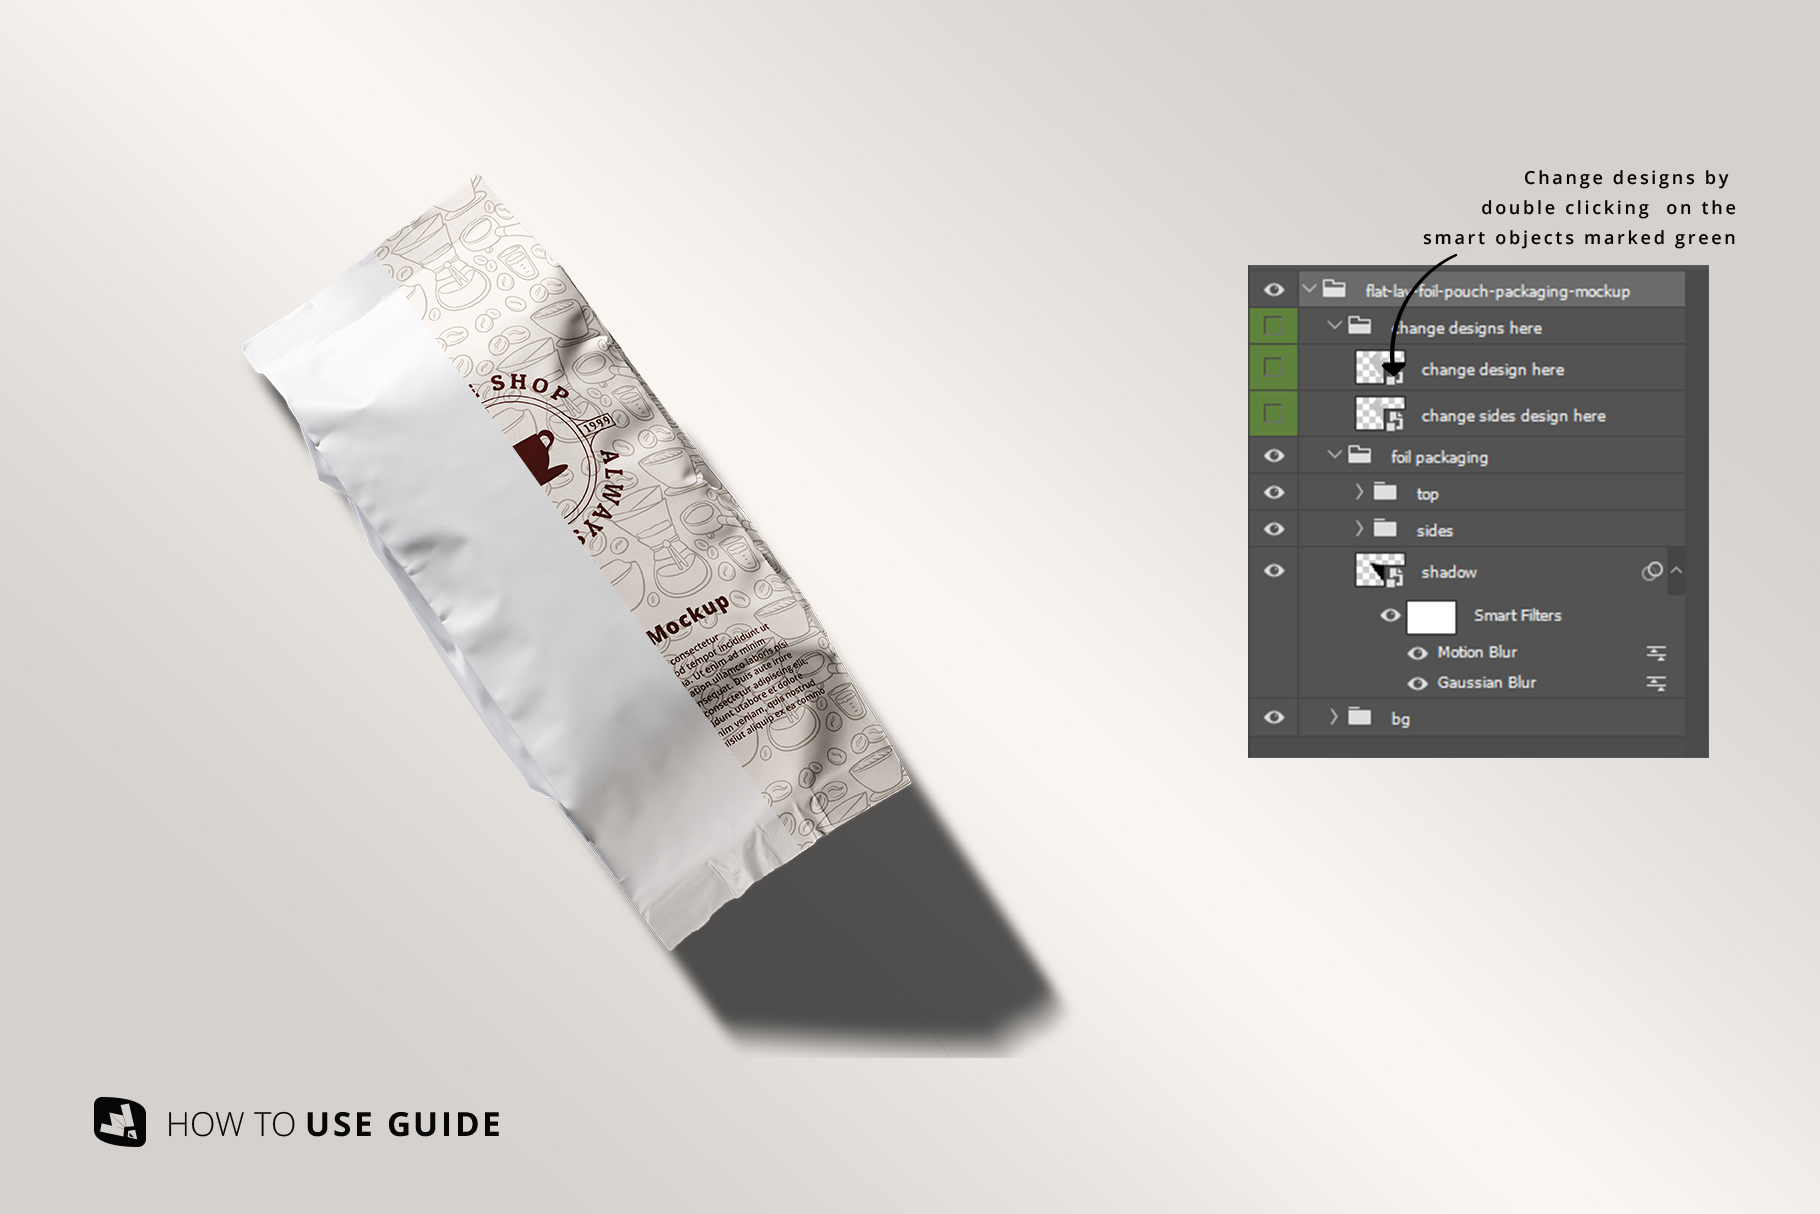 change design of the flat lay foil pouch packaging mockup